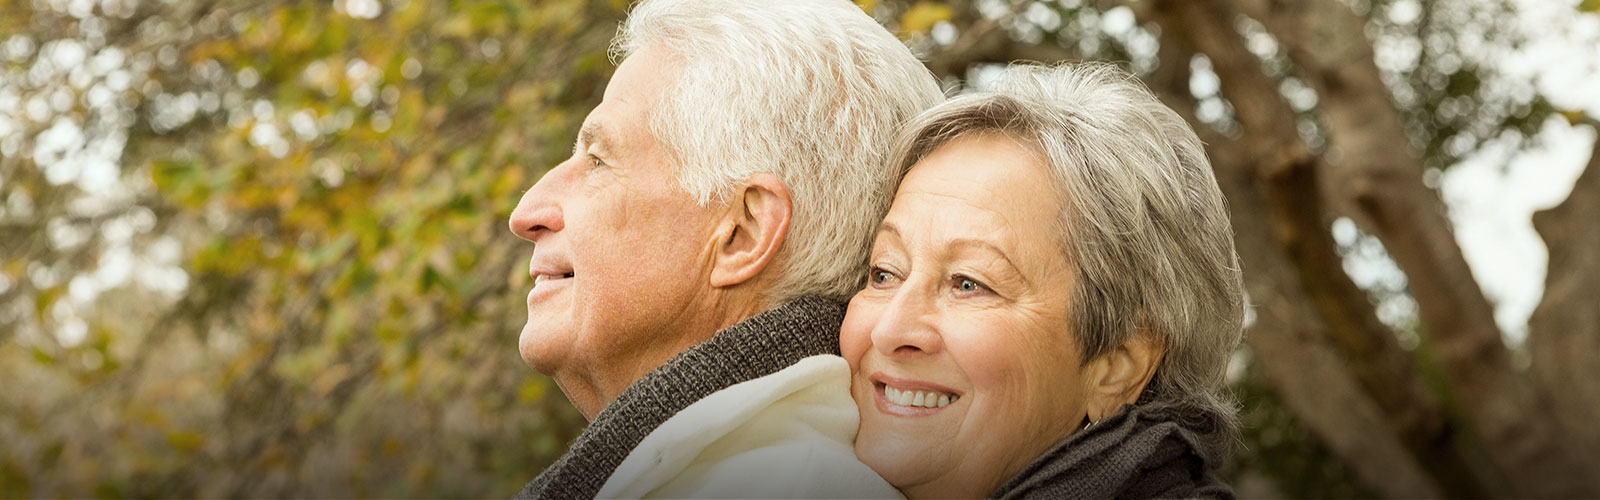 Elderly couple hugging and smiling outdoors